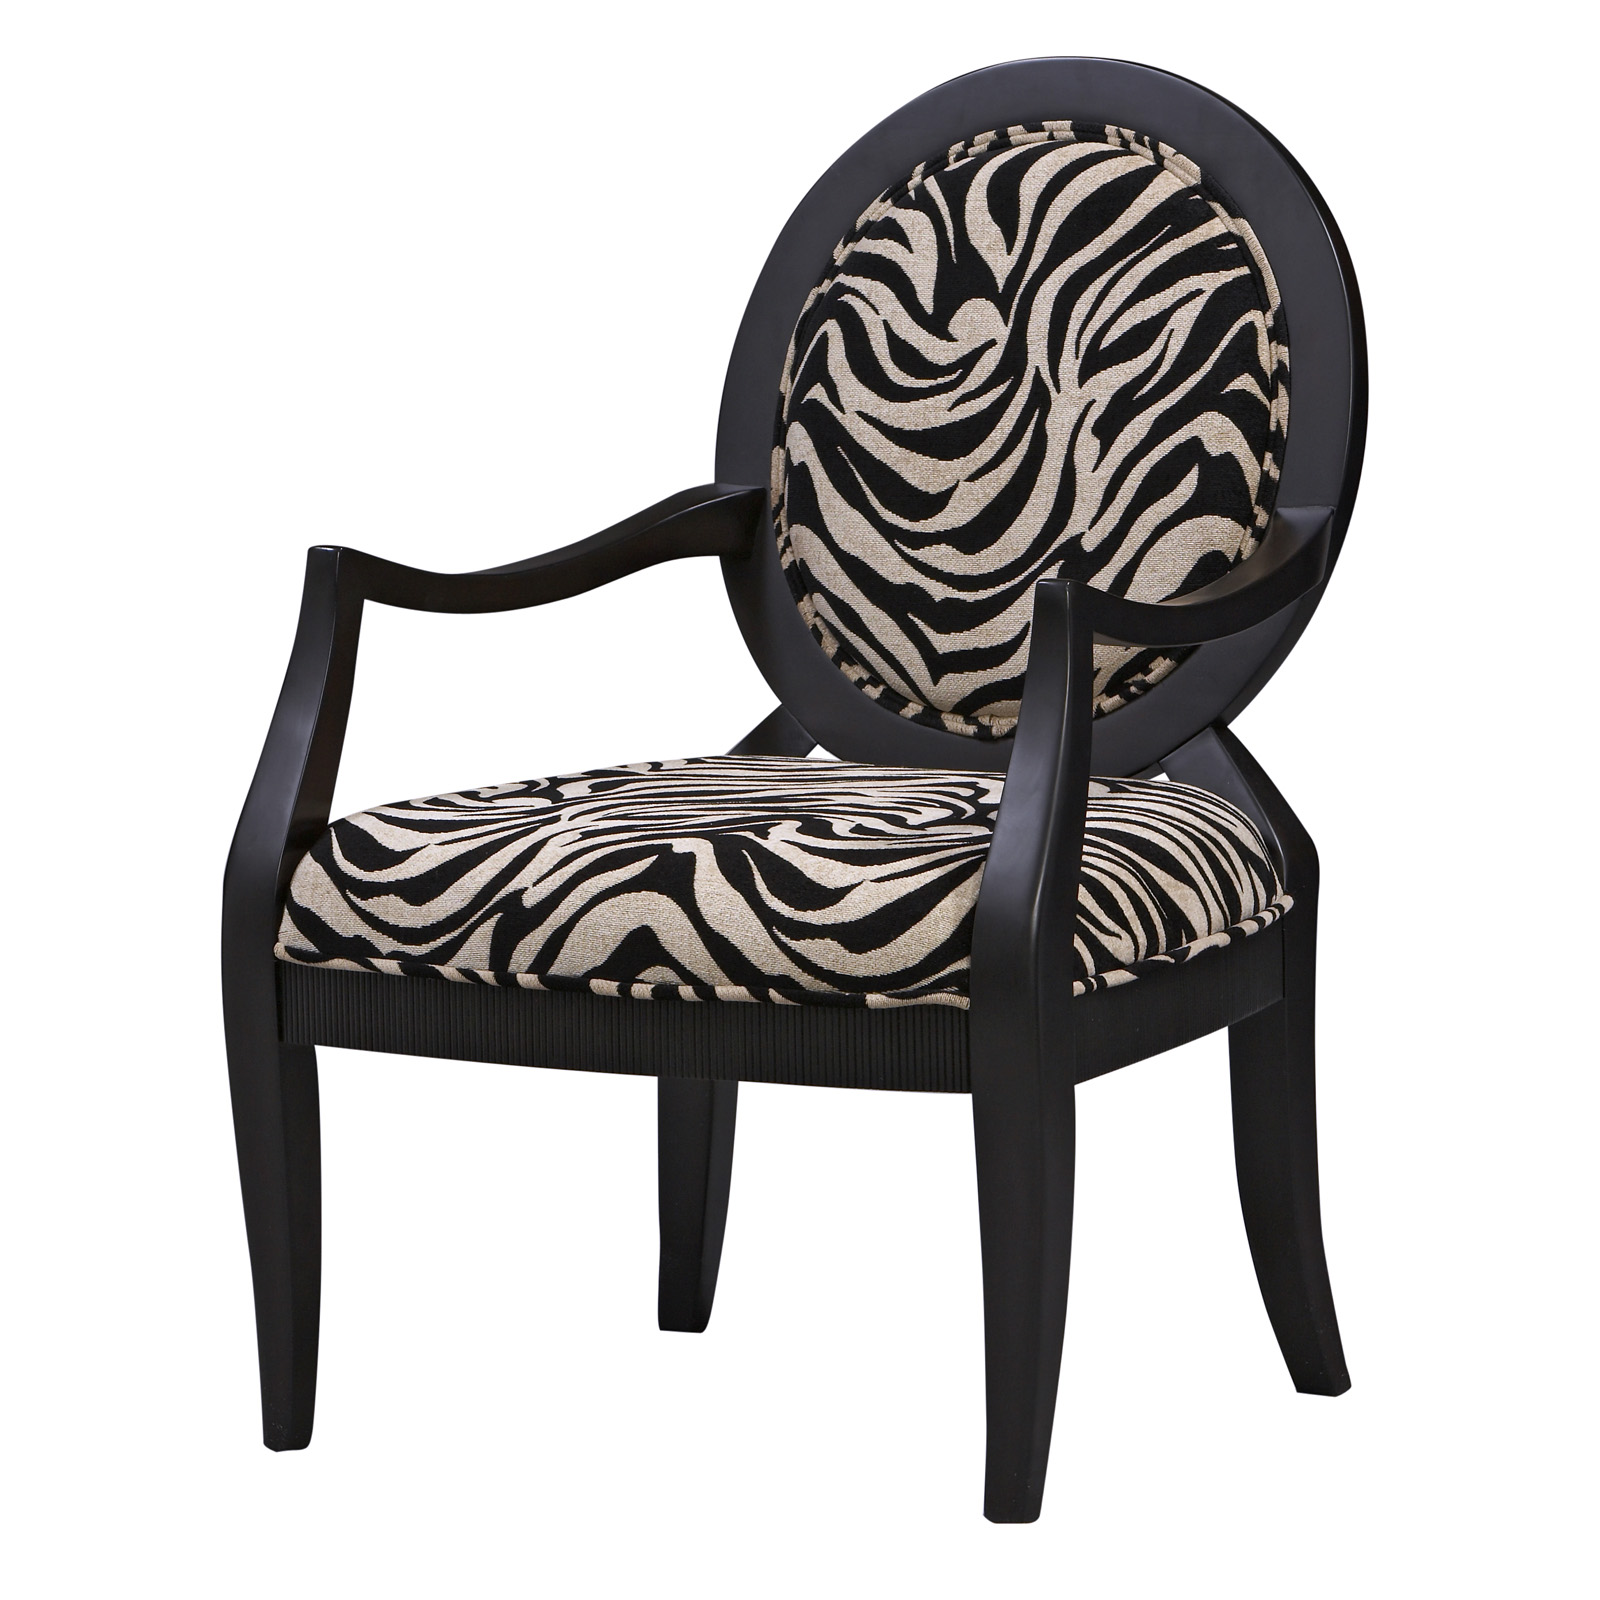 Zebra Print Occasional Arm Chair At Hayneedle